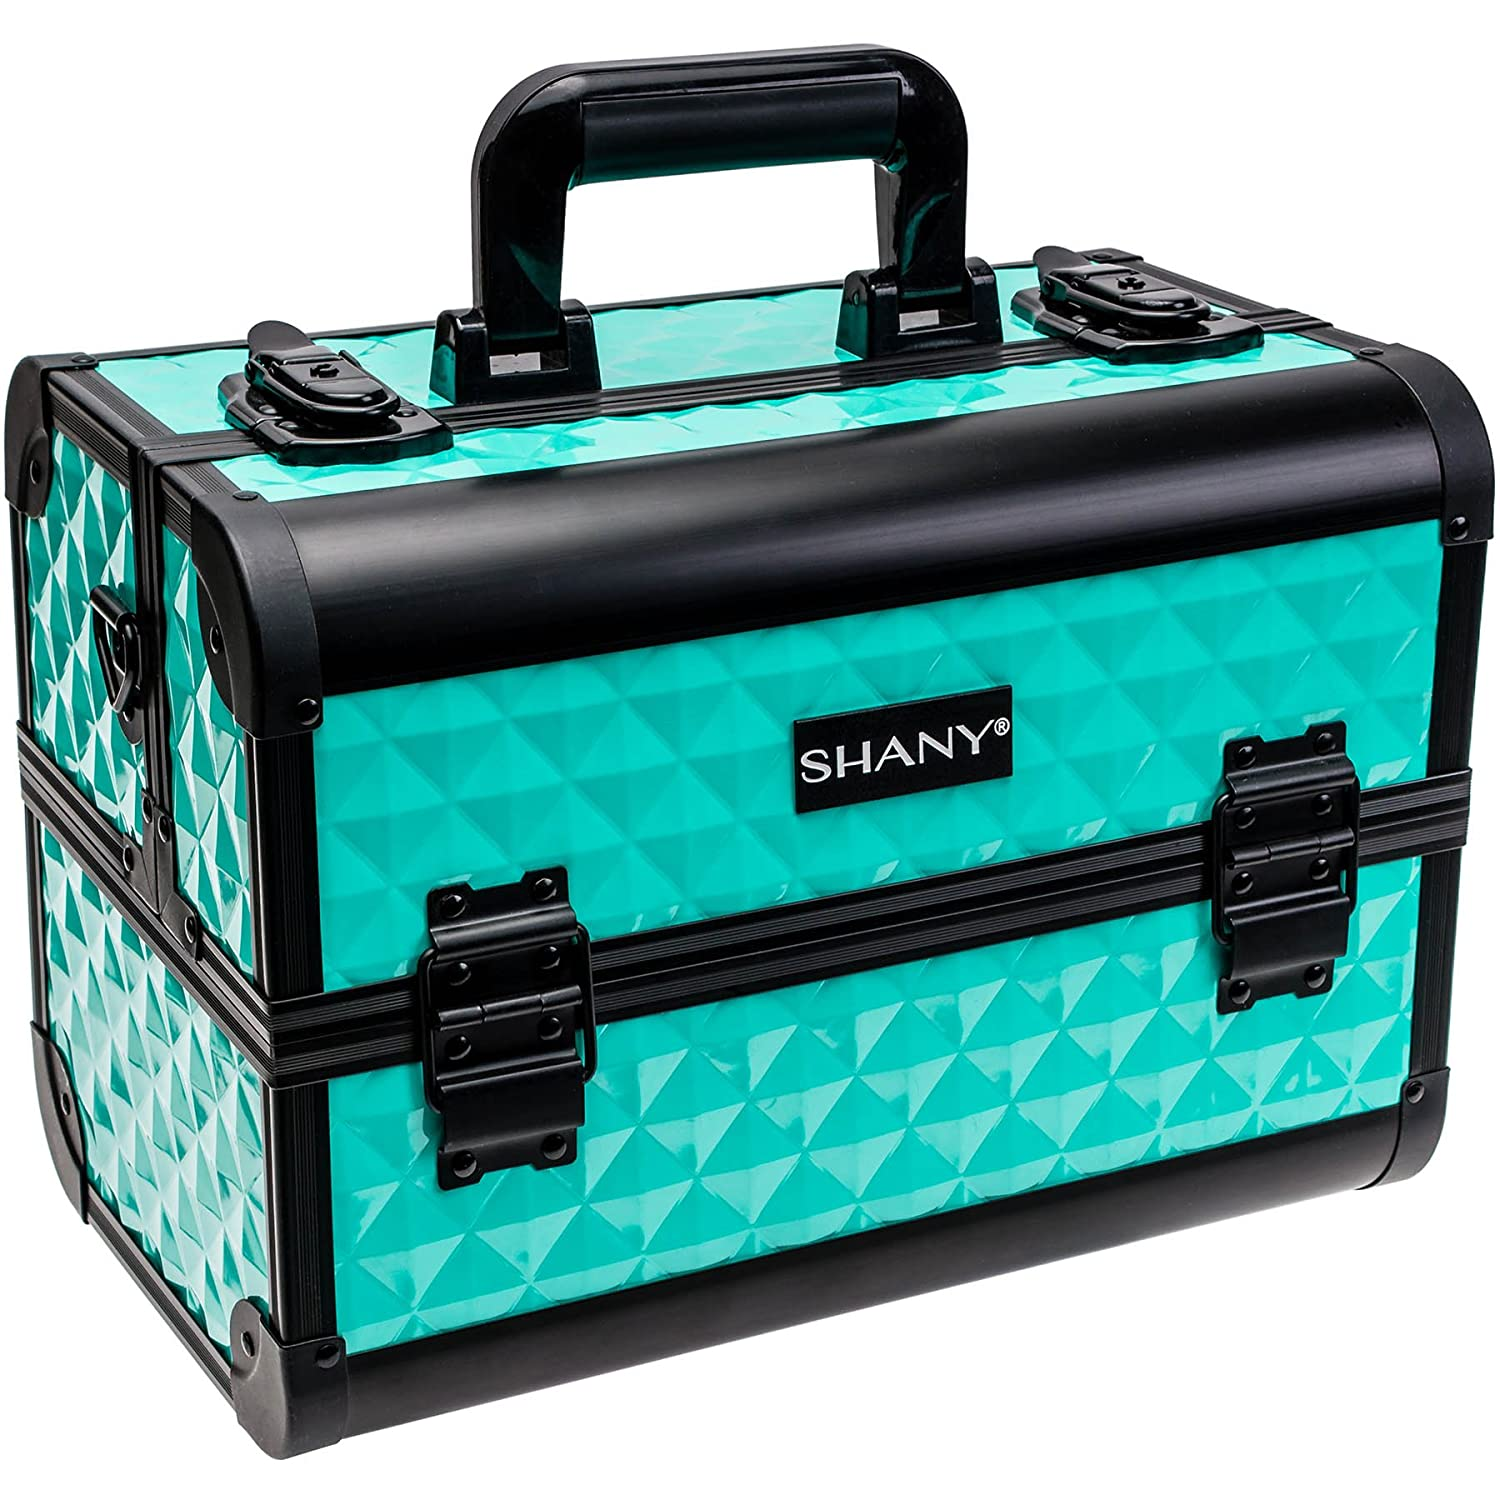 SHANY Premier Fantasy Collection Makeup Artists Cosmetics Train Case - Turquoise